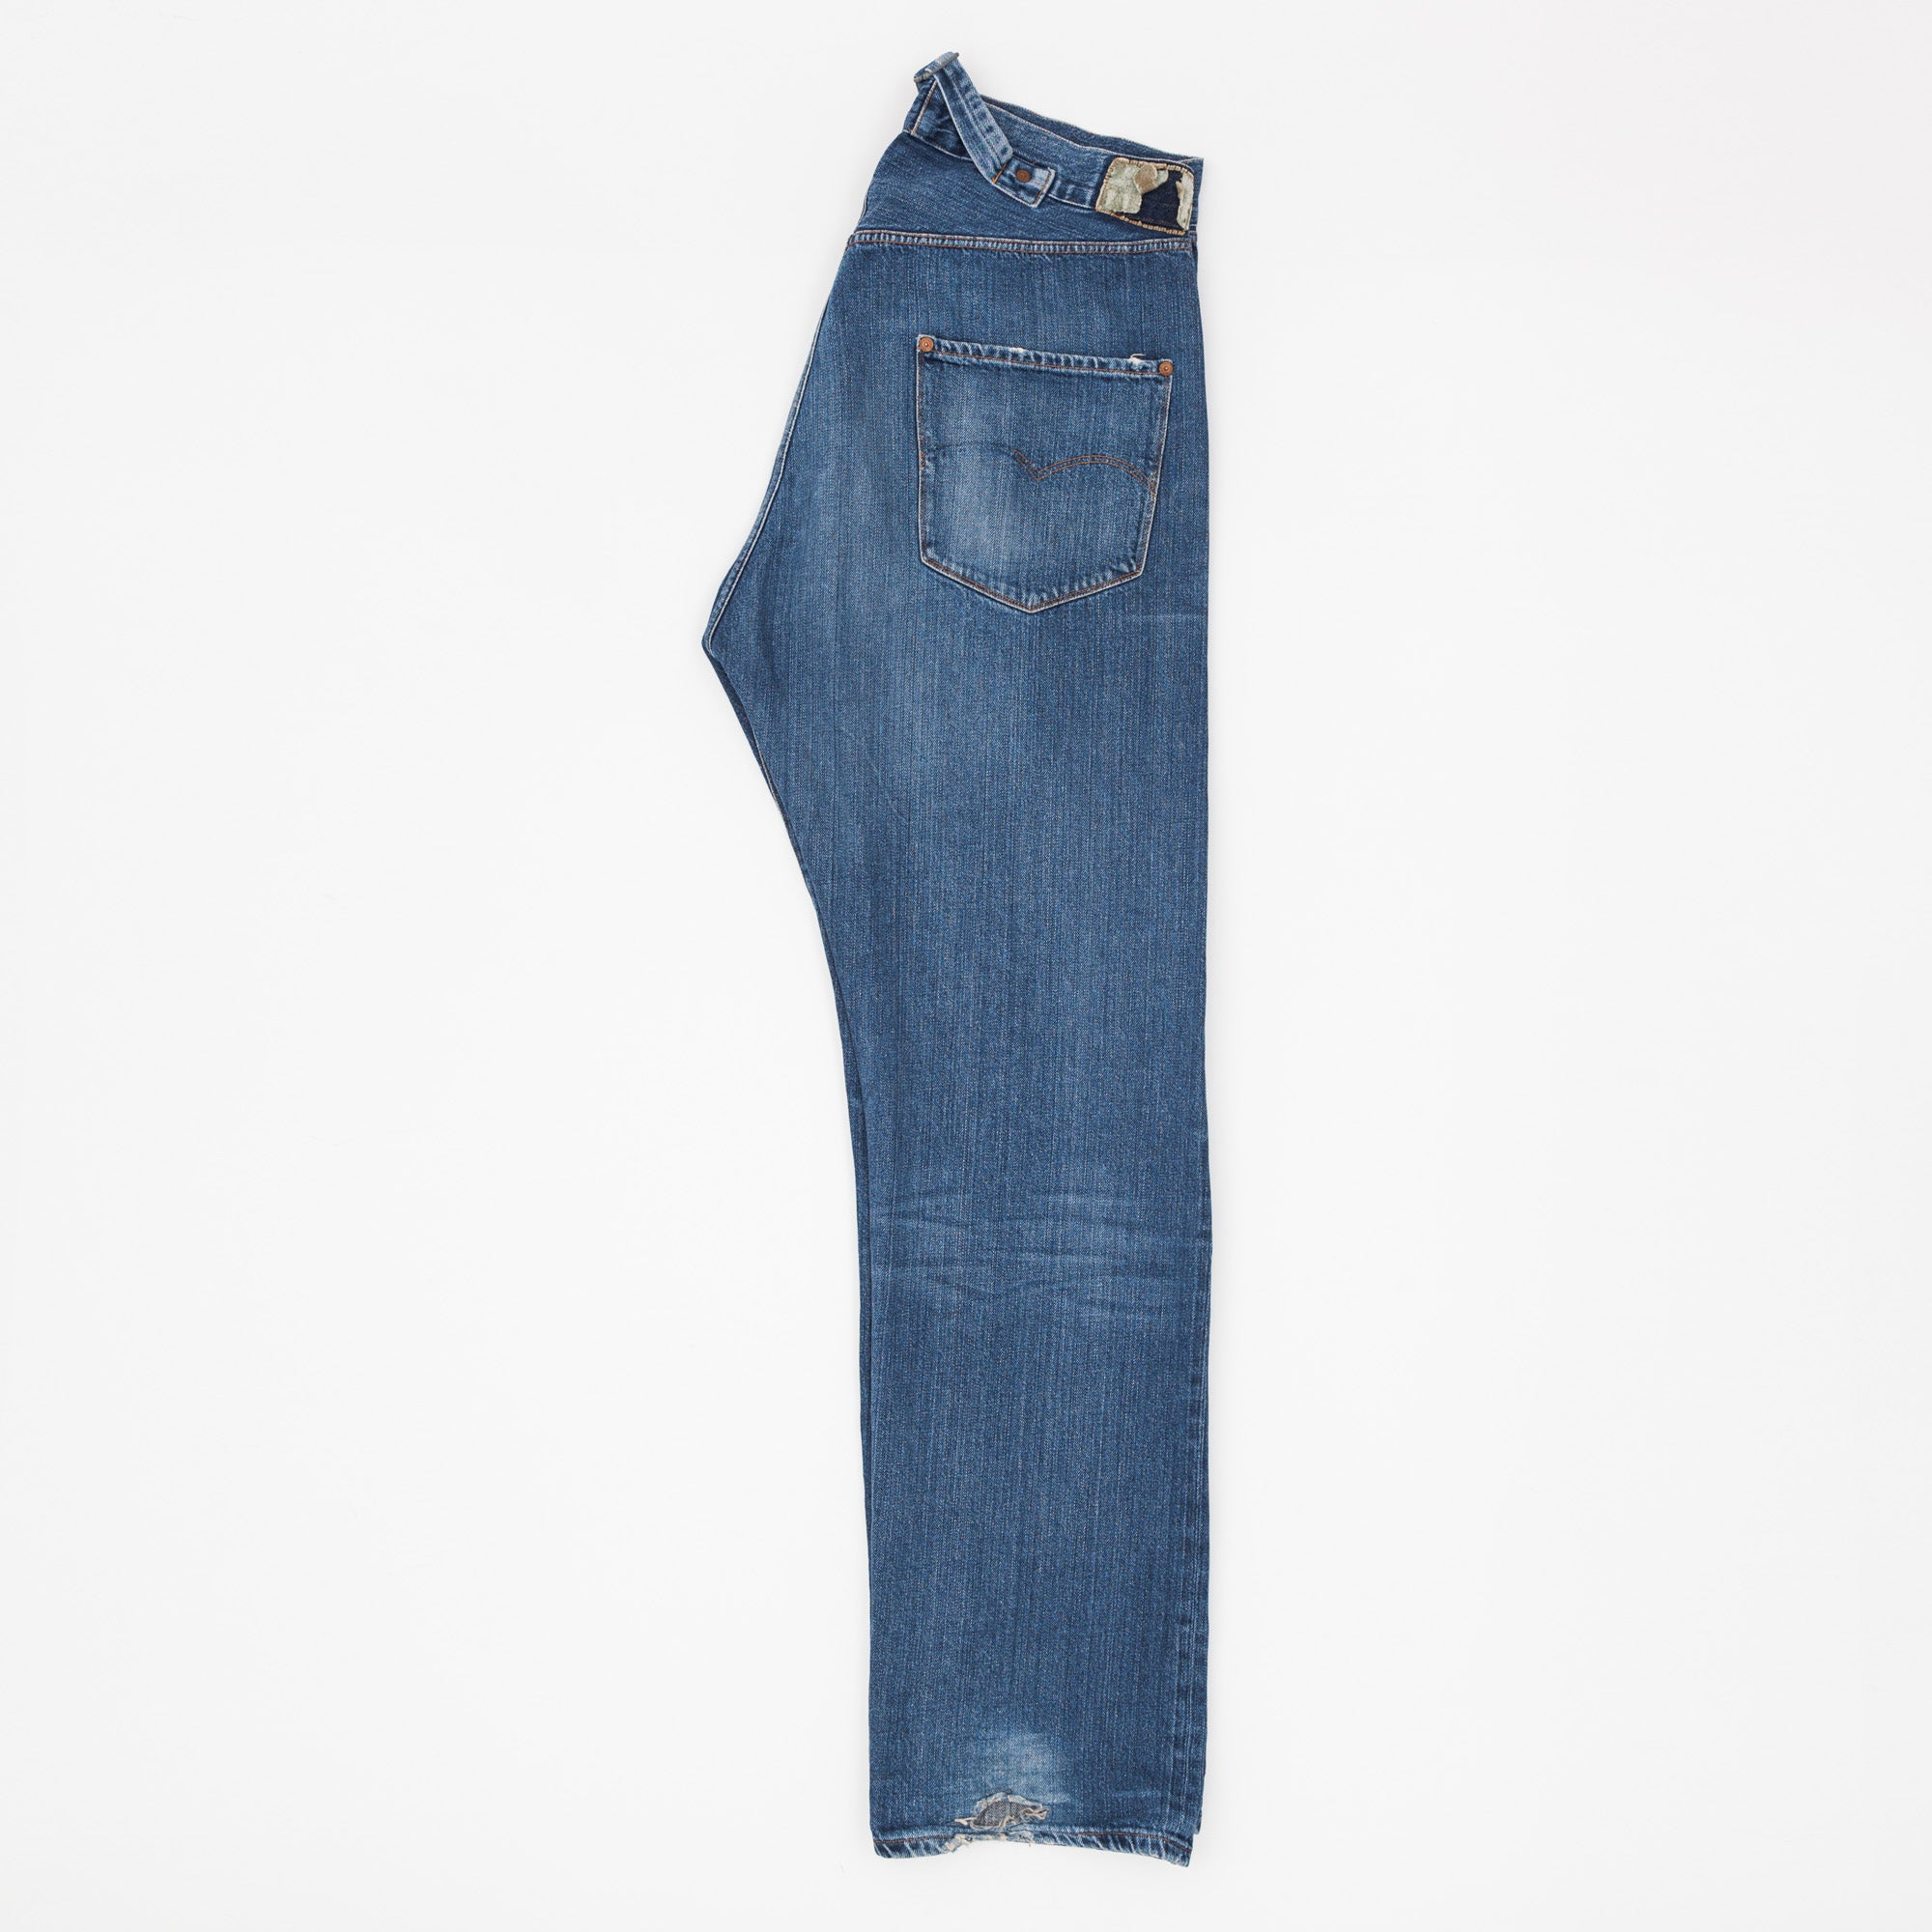 201 Cinch Back Denim Jeans